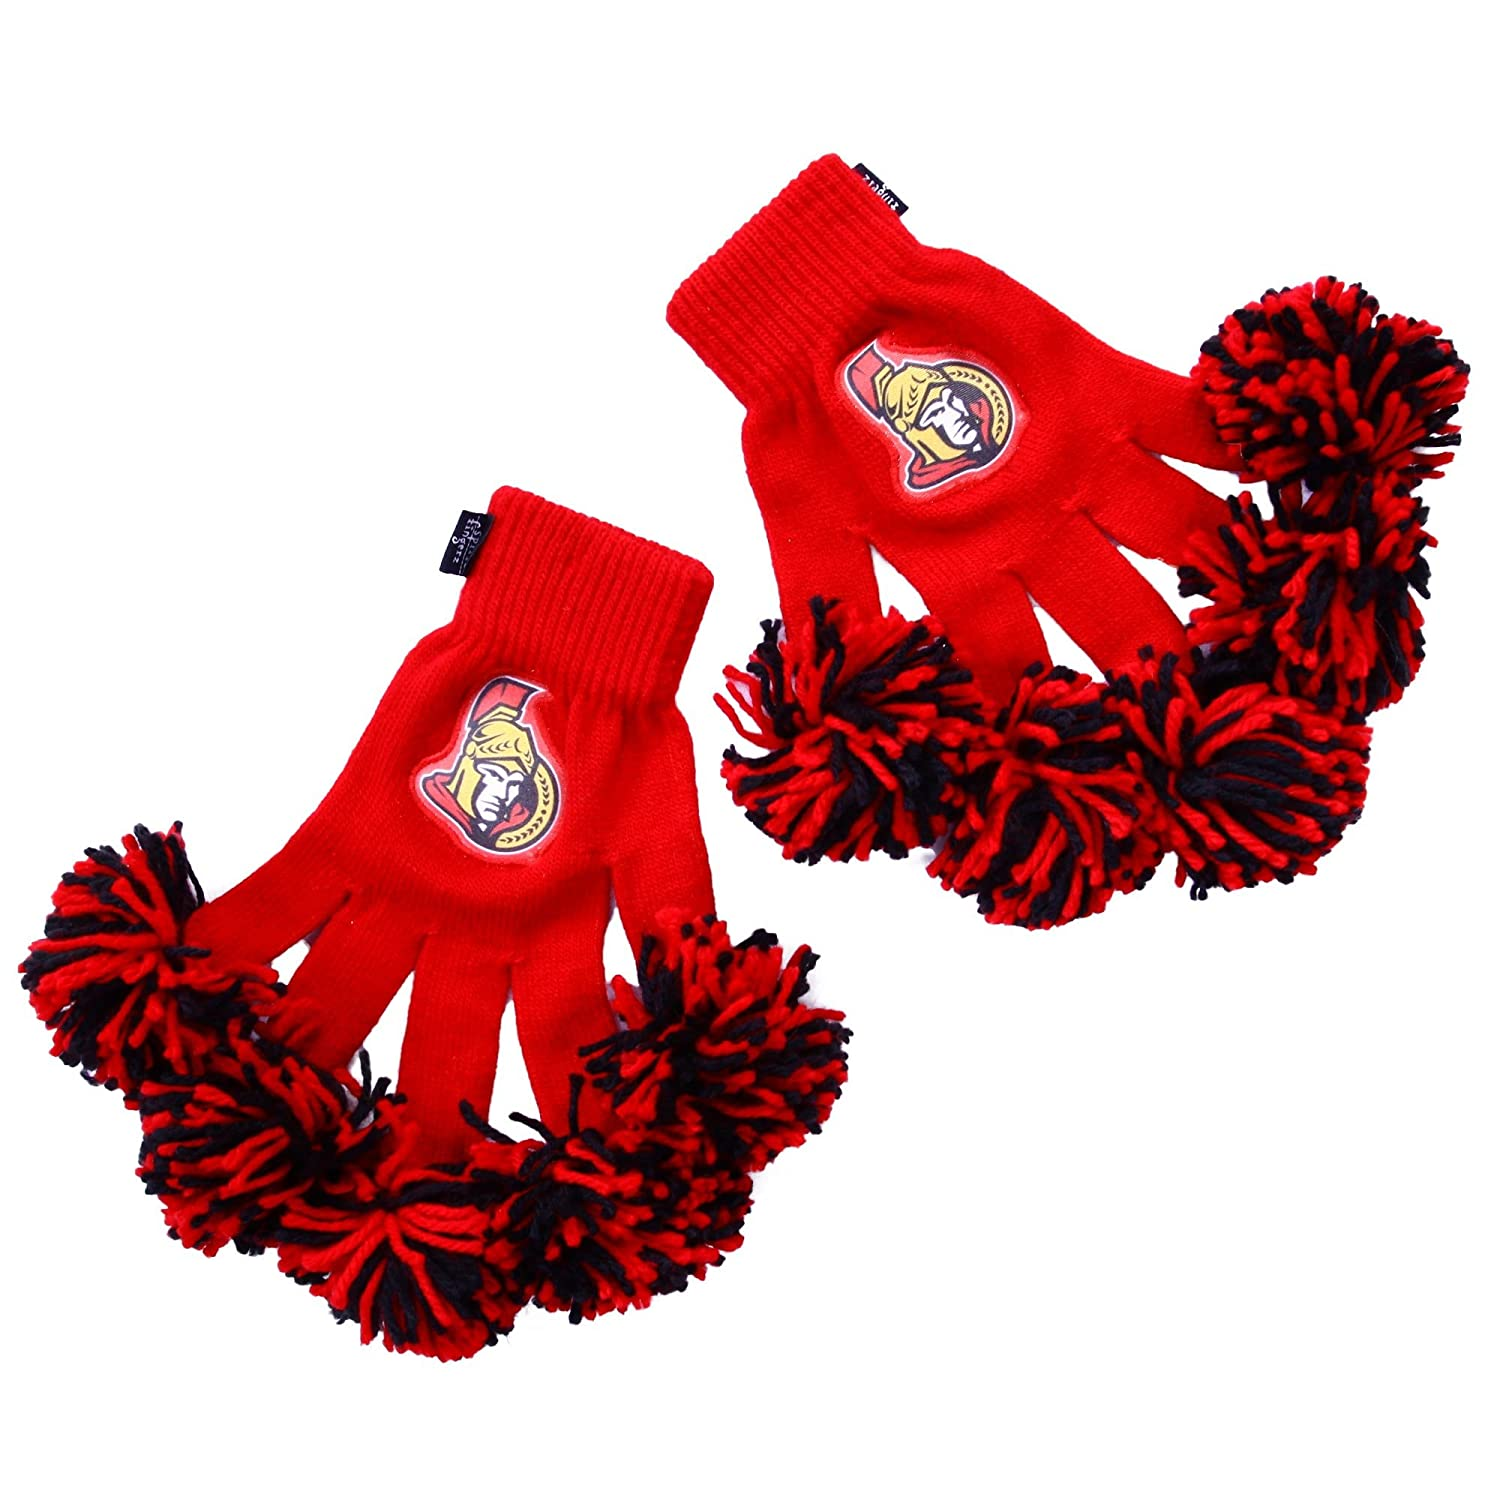 NHL Ottawa Senators Embroidered Spirit Fingerz Pom Pom Gloves